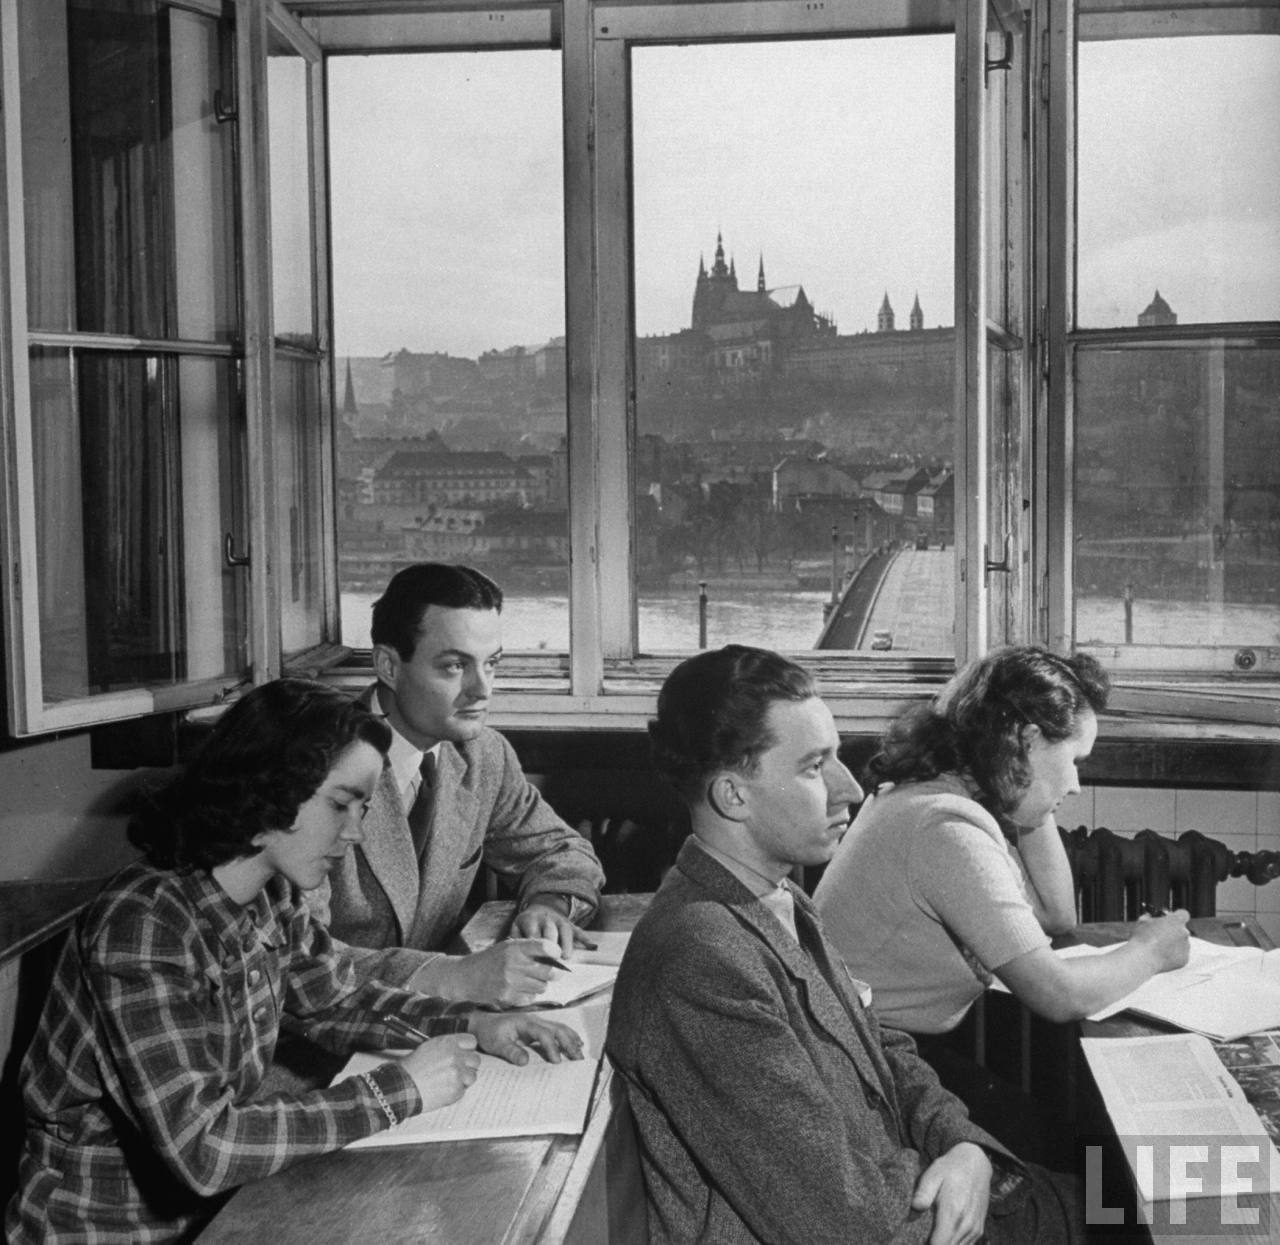 John Skrivanek (Rear L) of Austin,Texas, with fellow students in classroom of philosophy building of Charles University on banks of the Vltava River overlooking ancient Hradcany castle and St. Vitus Cathedral.